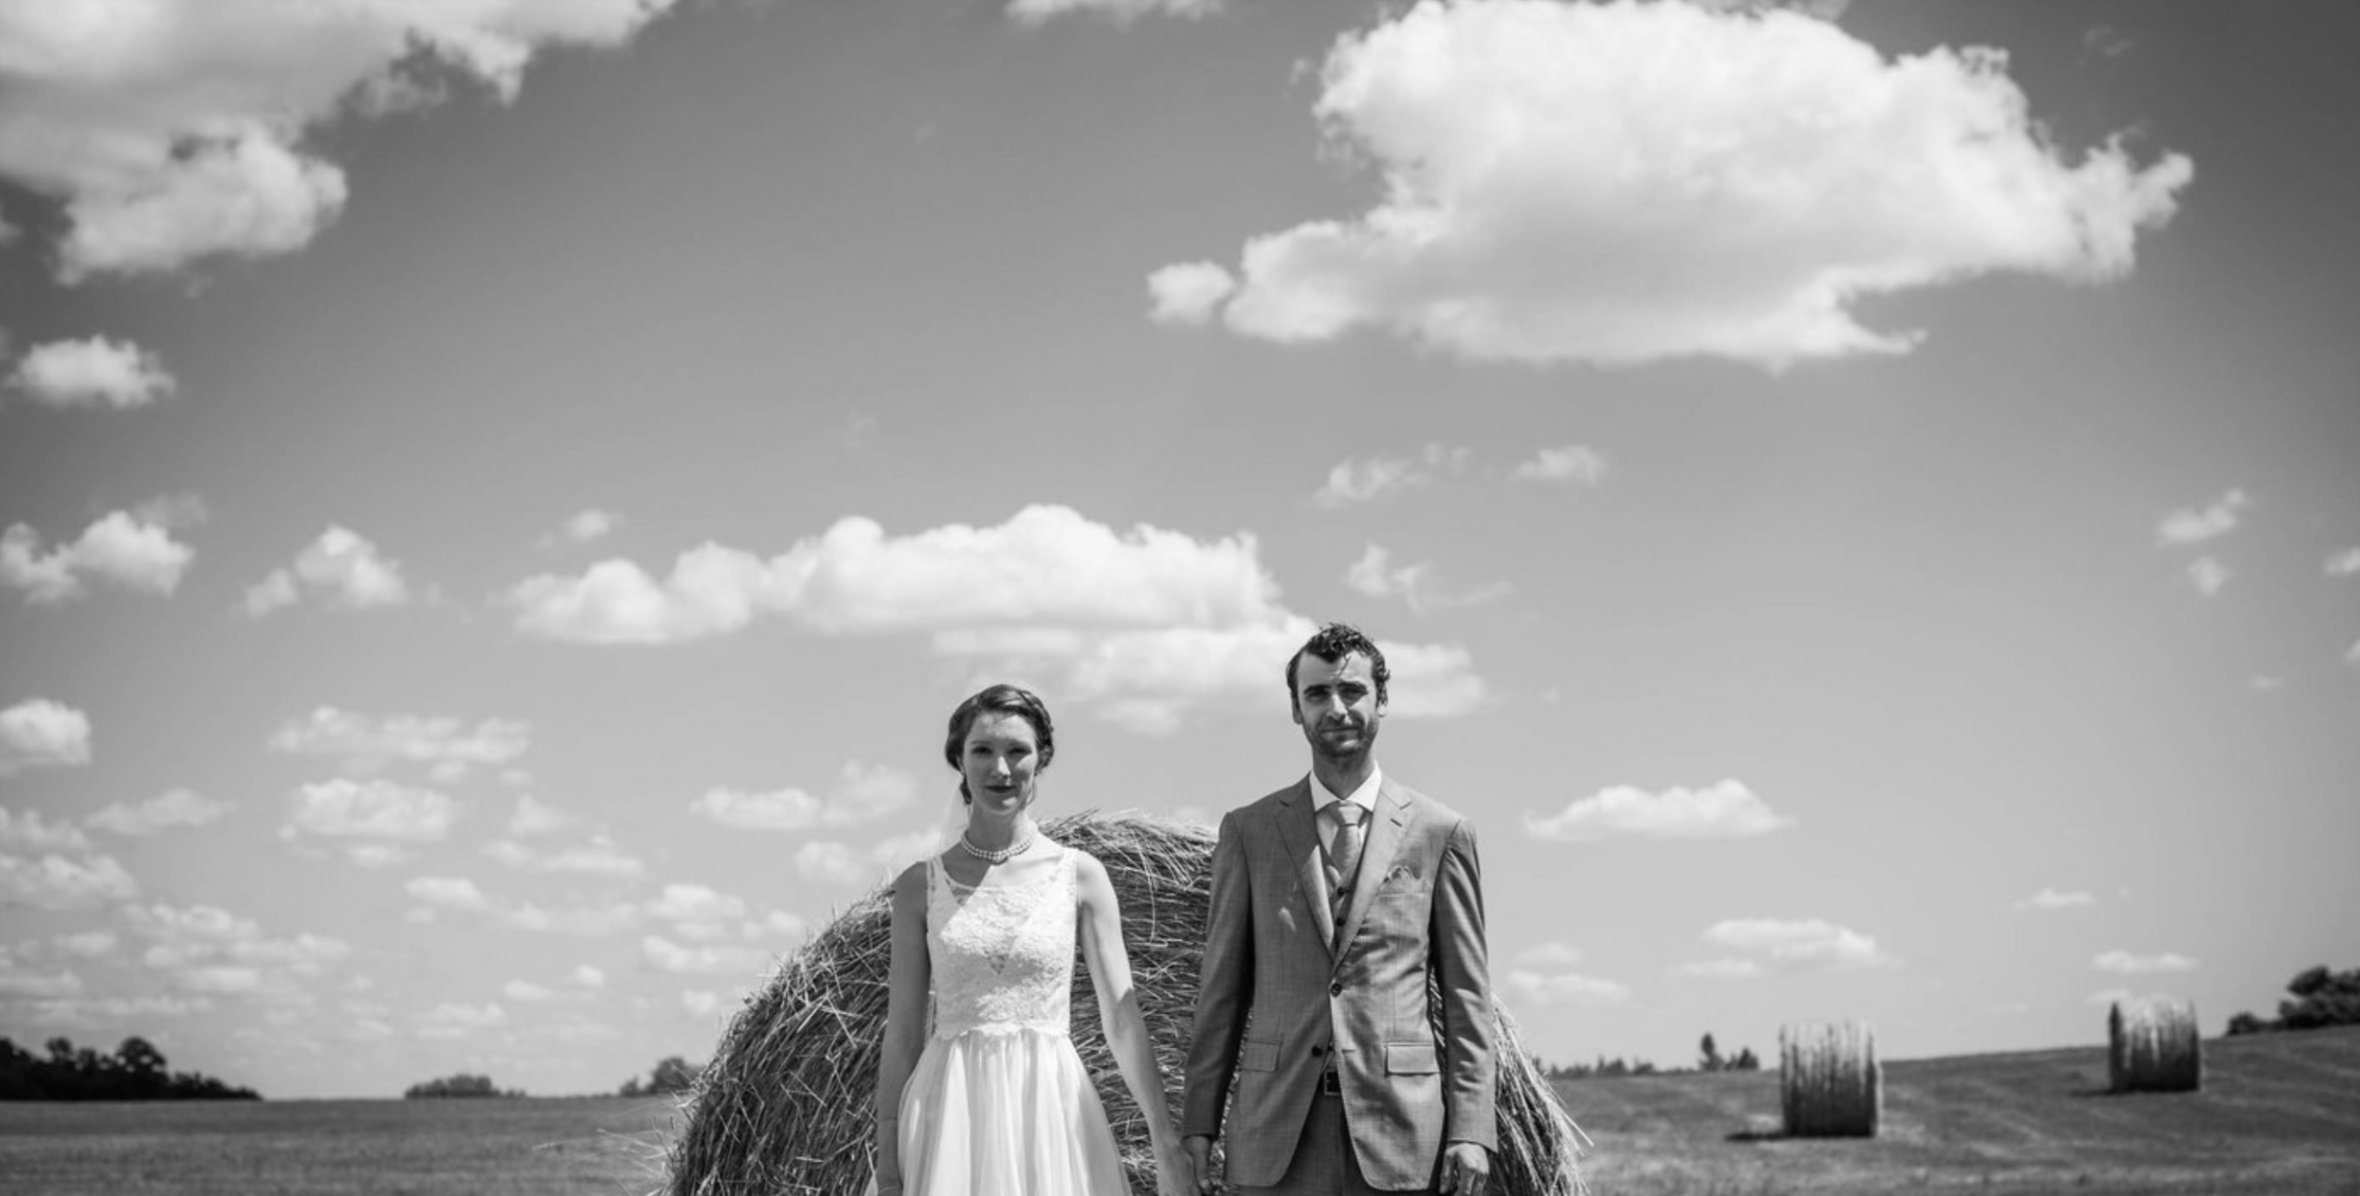 american gothic. - sometimes just a straight-forward, side-by-side stoic look makes for an iconic portrait.